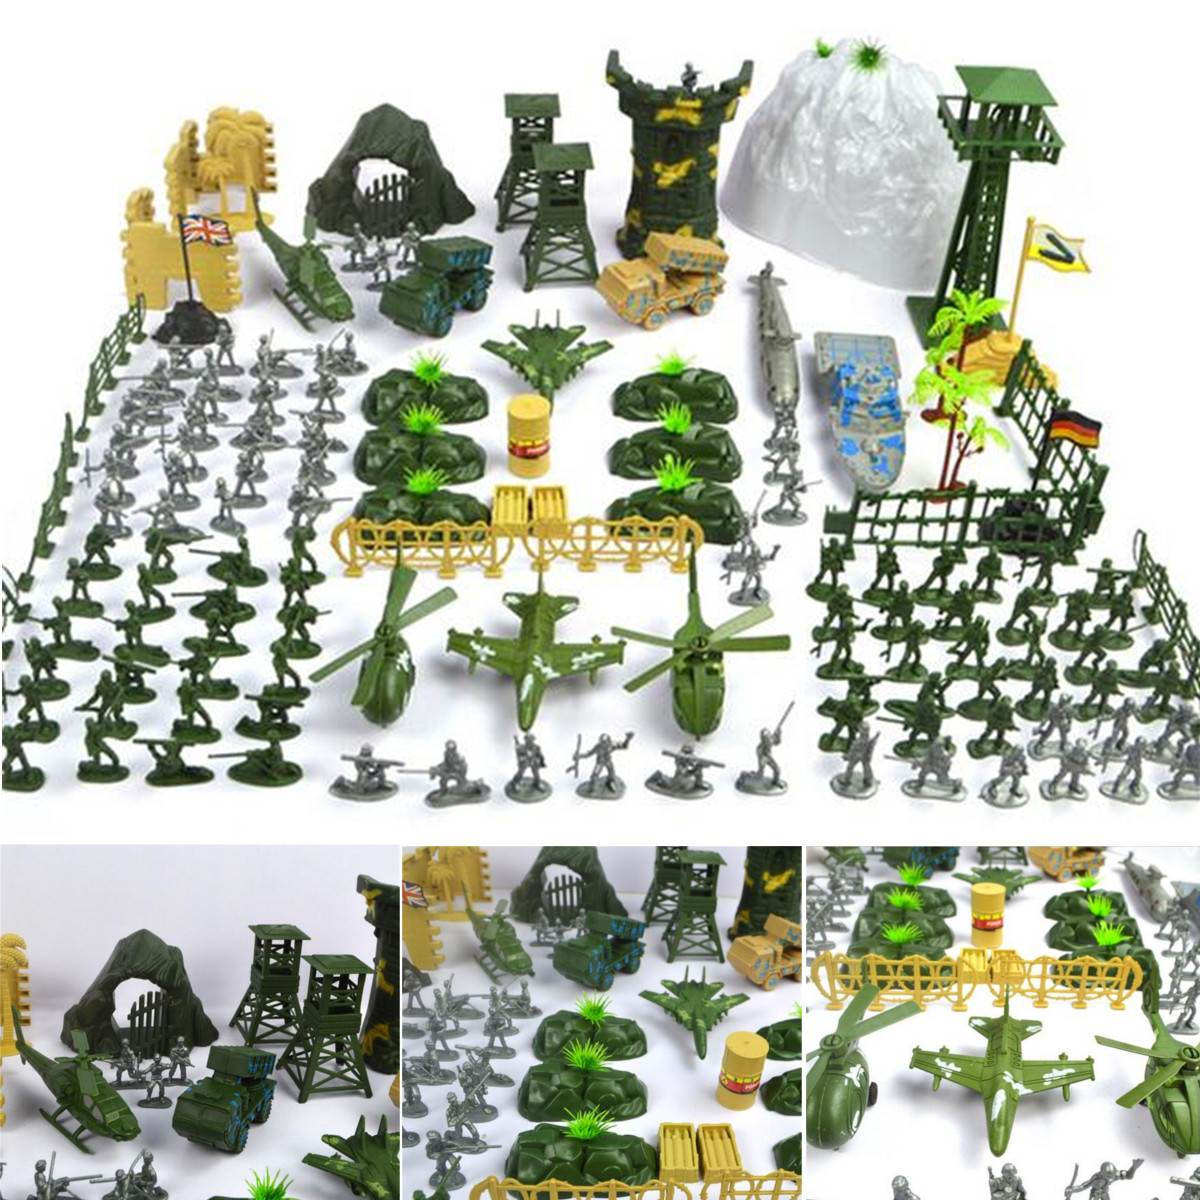 New Arrival 150 pcs/set Military Plastic Toy Soldier Army Men Figures & Accessories Playset Kit Gift Model Toy For Kids Boys